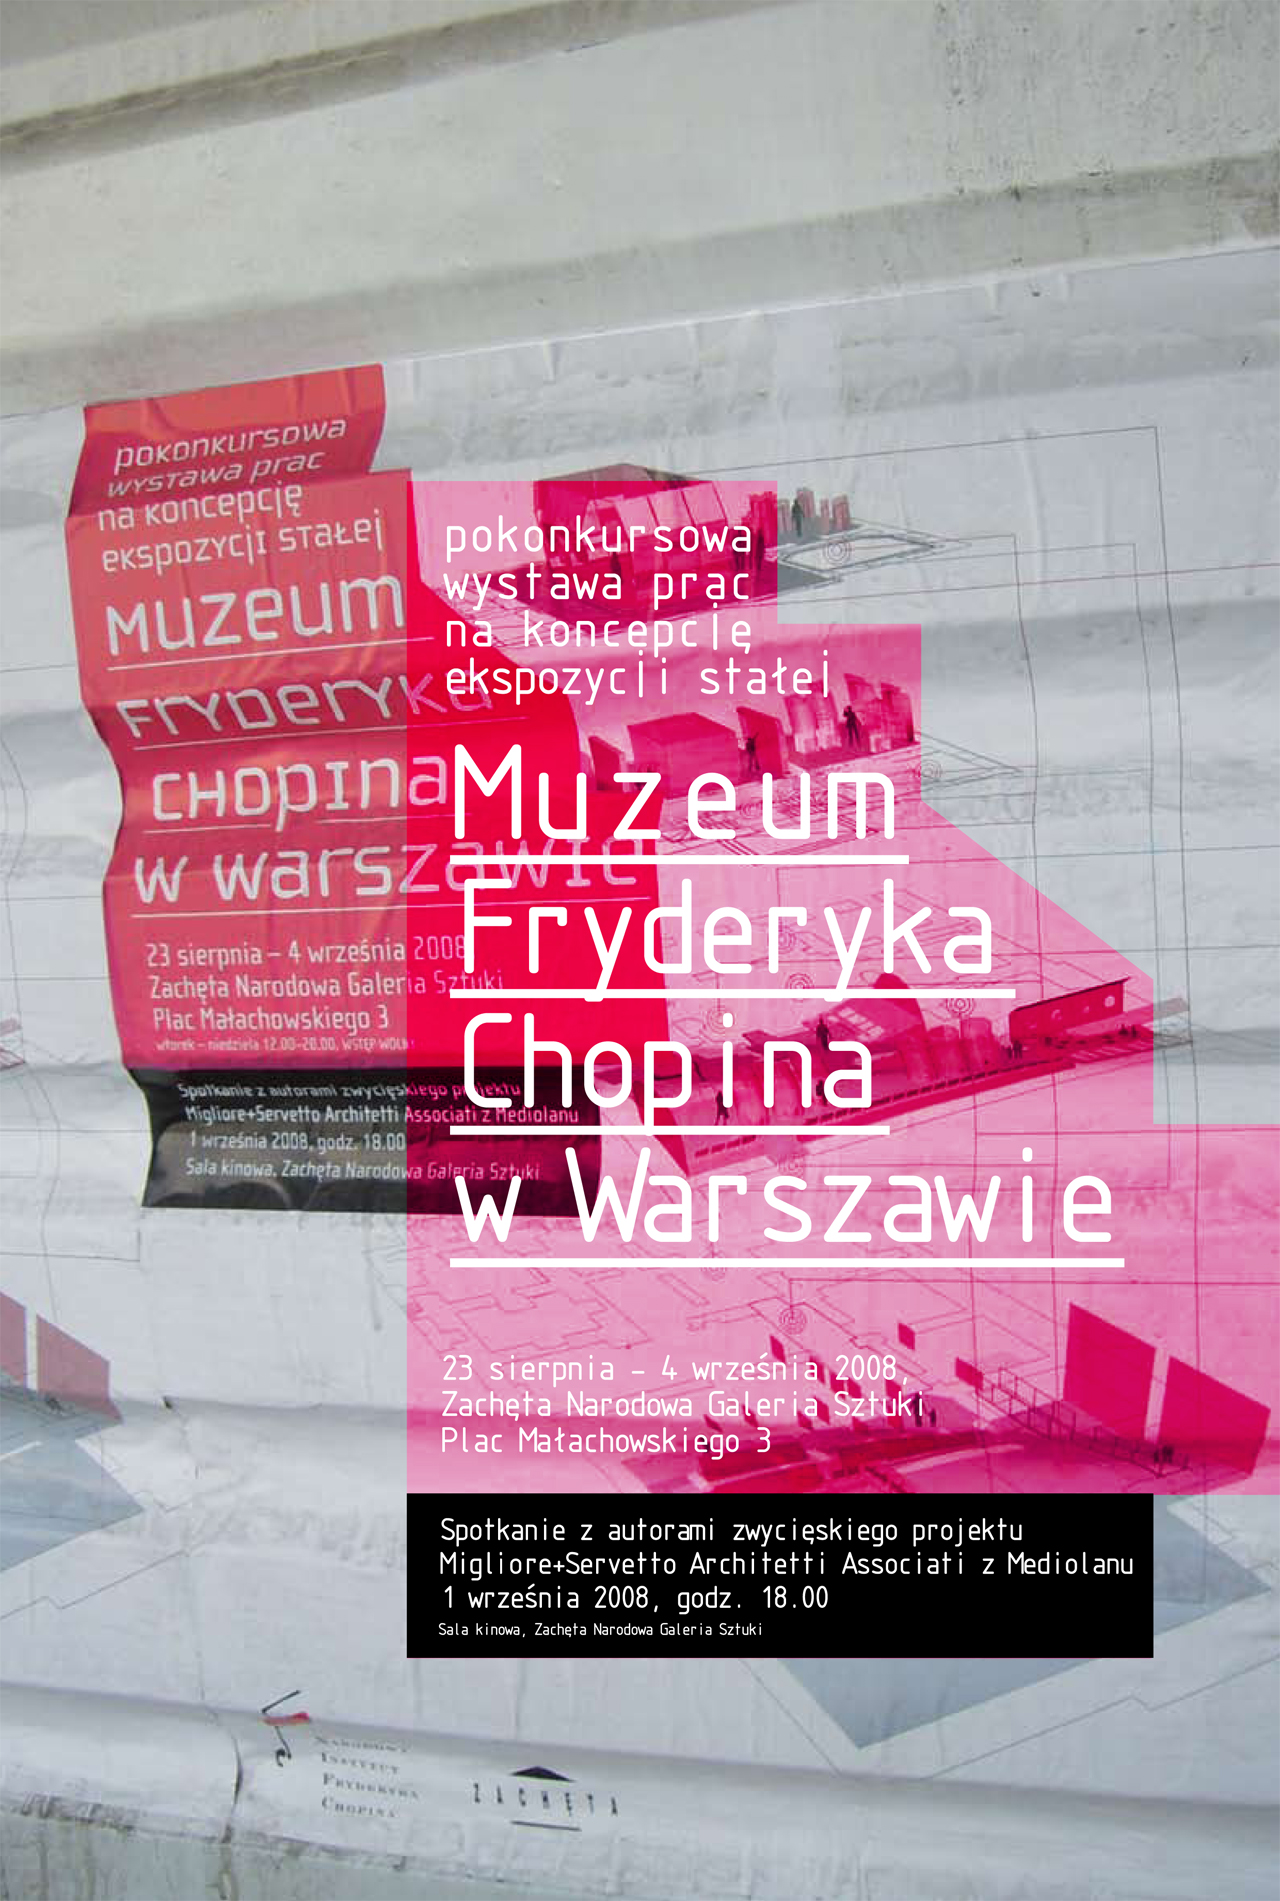 chopin-muzeum-book-page-9-copy